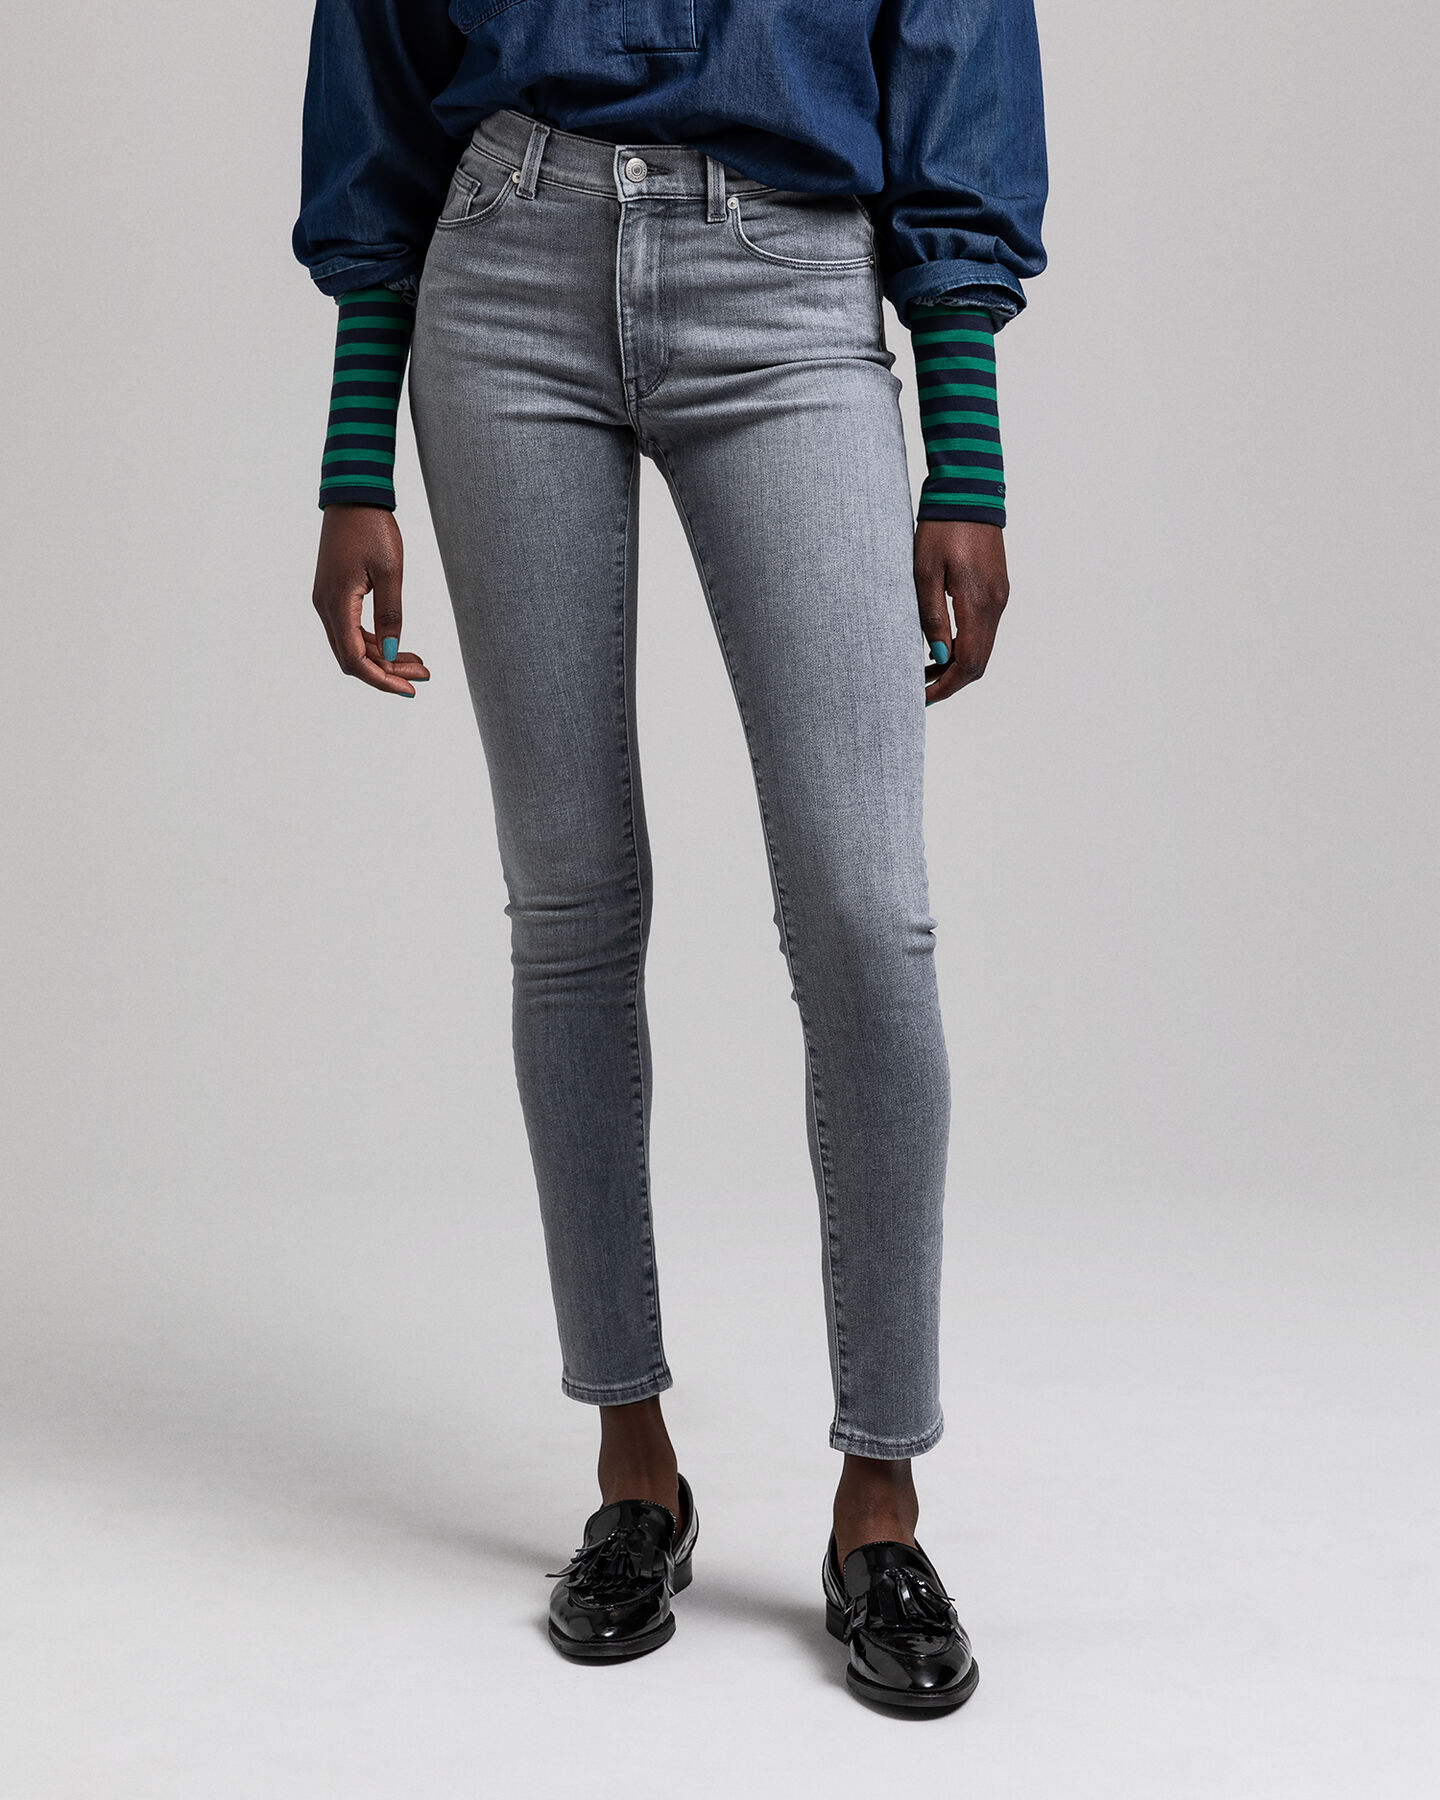 Super Stretch Skinny Jeans